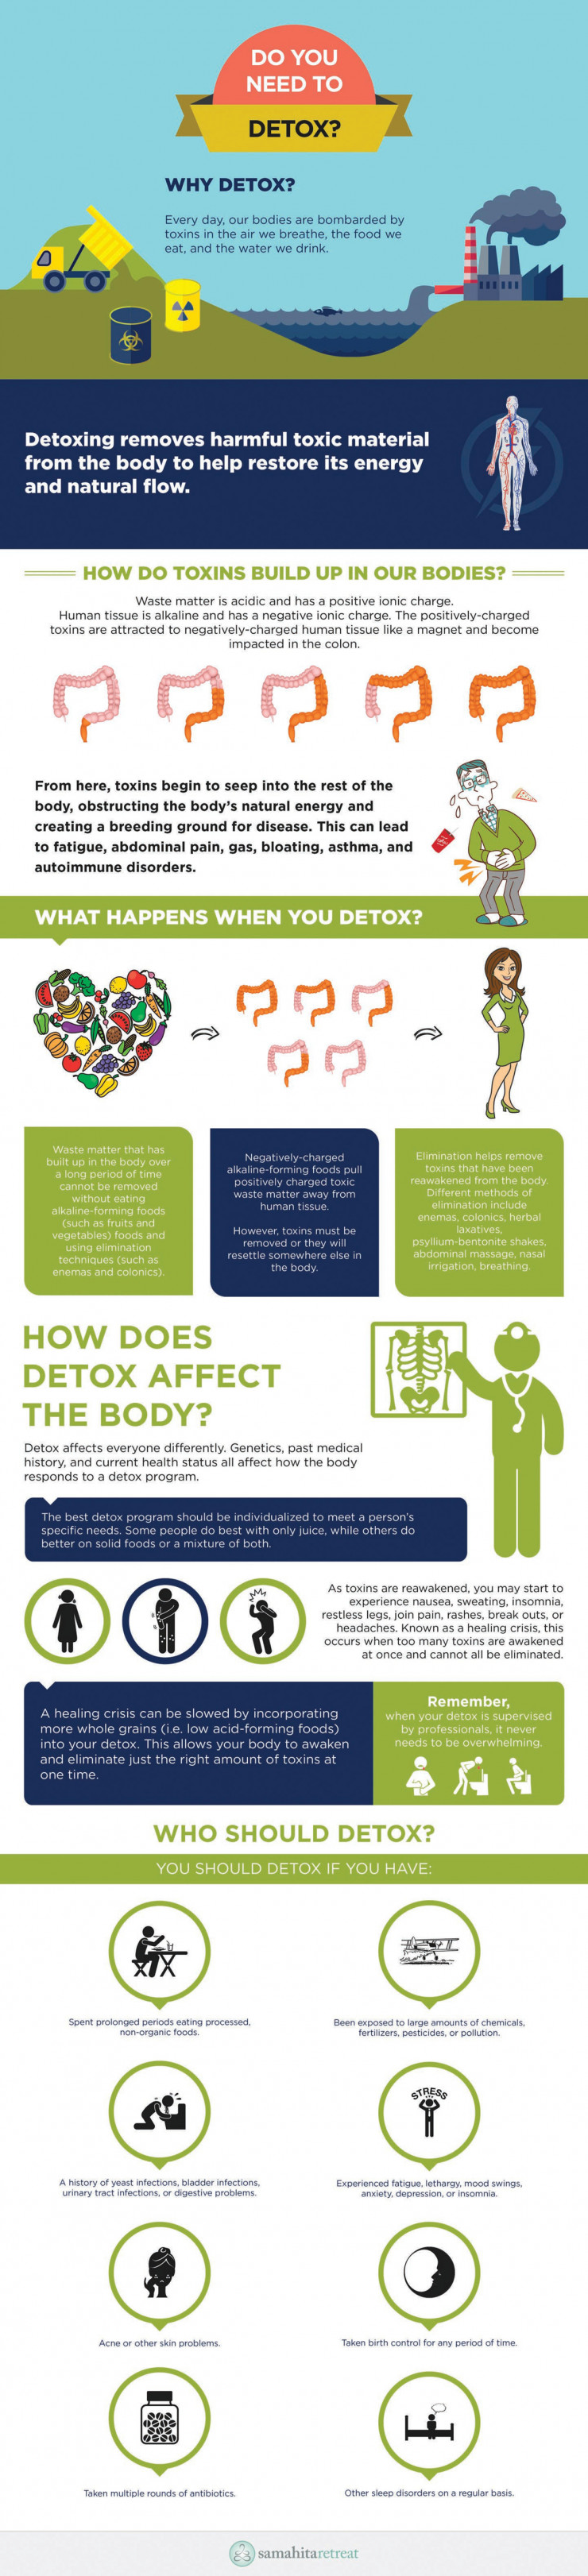 Do You Need To Detox?